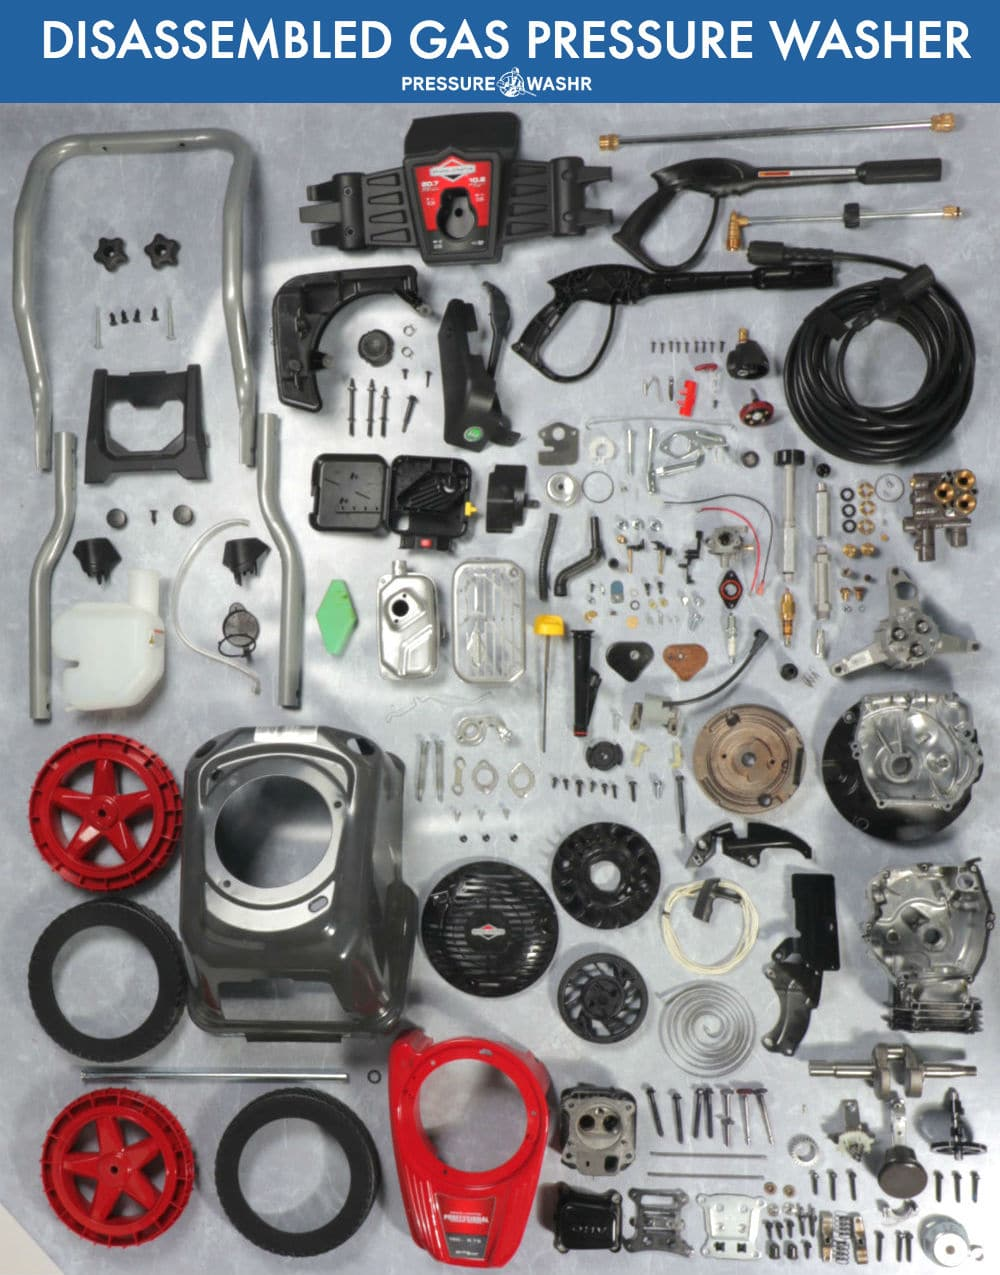 Briggs and Stratton Gas Power Washer Disassembled With Parts Organized Neatly